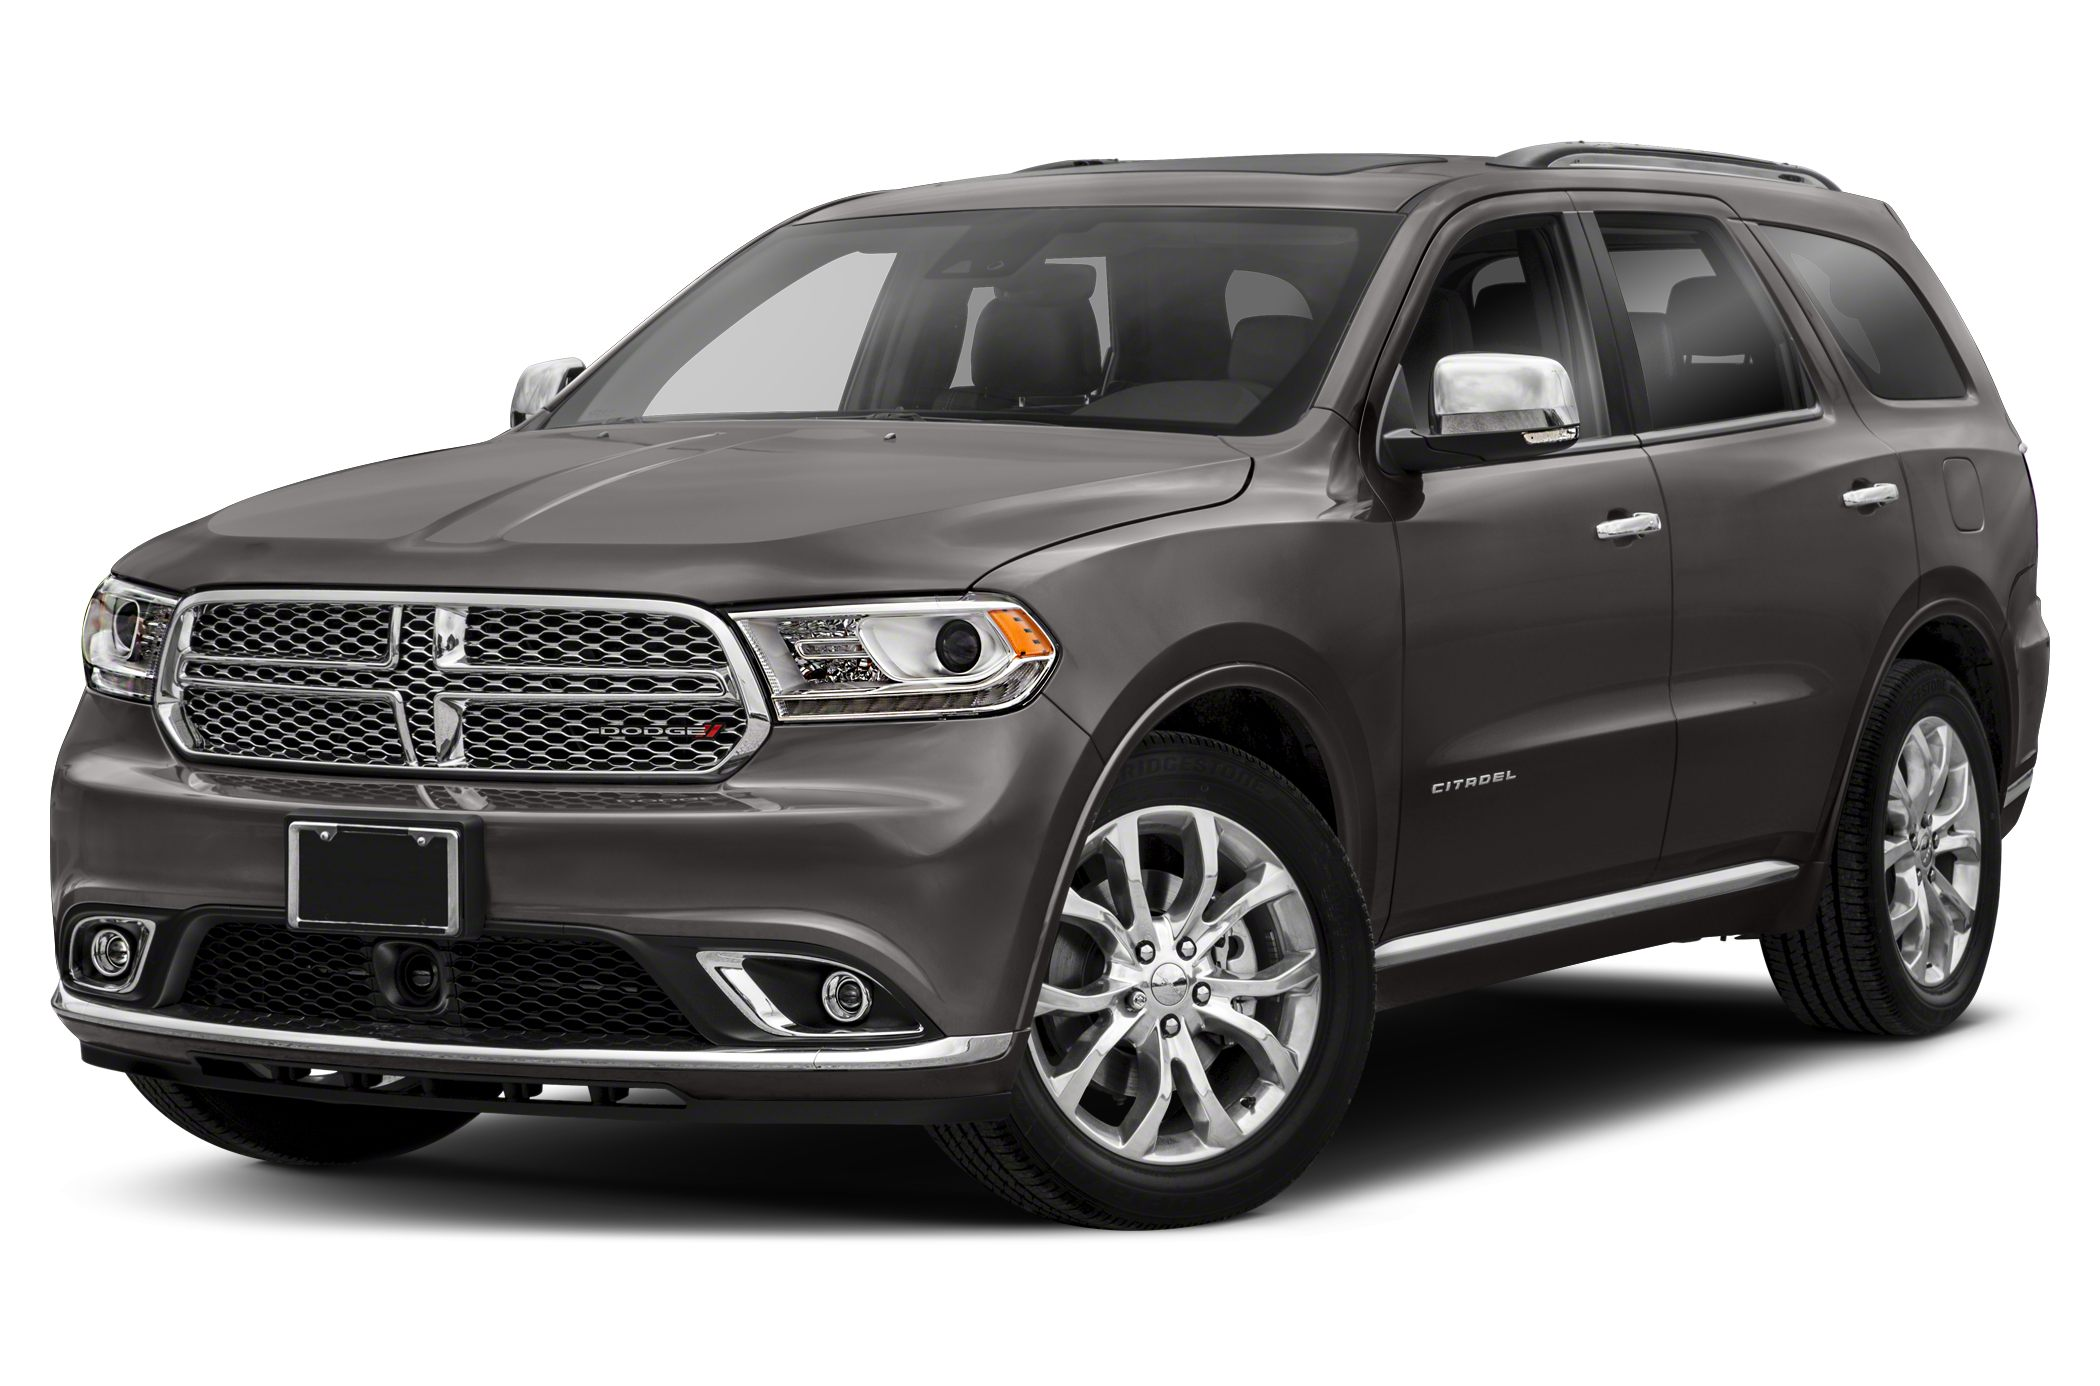 2018 Dodge Durango Citadel 4dr All-wheel Drive